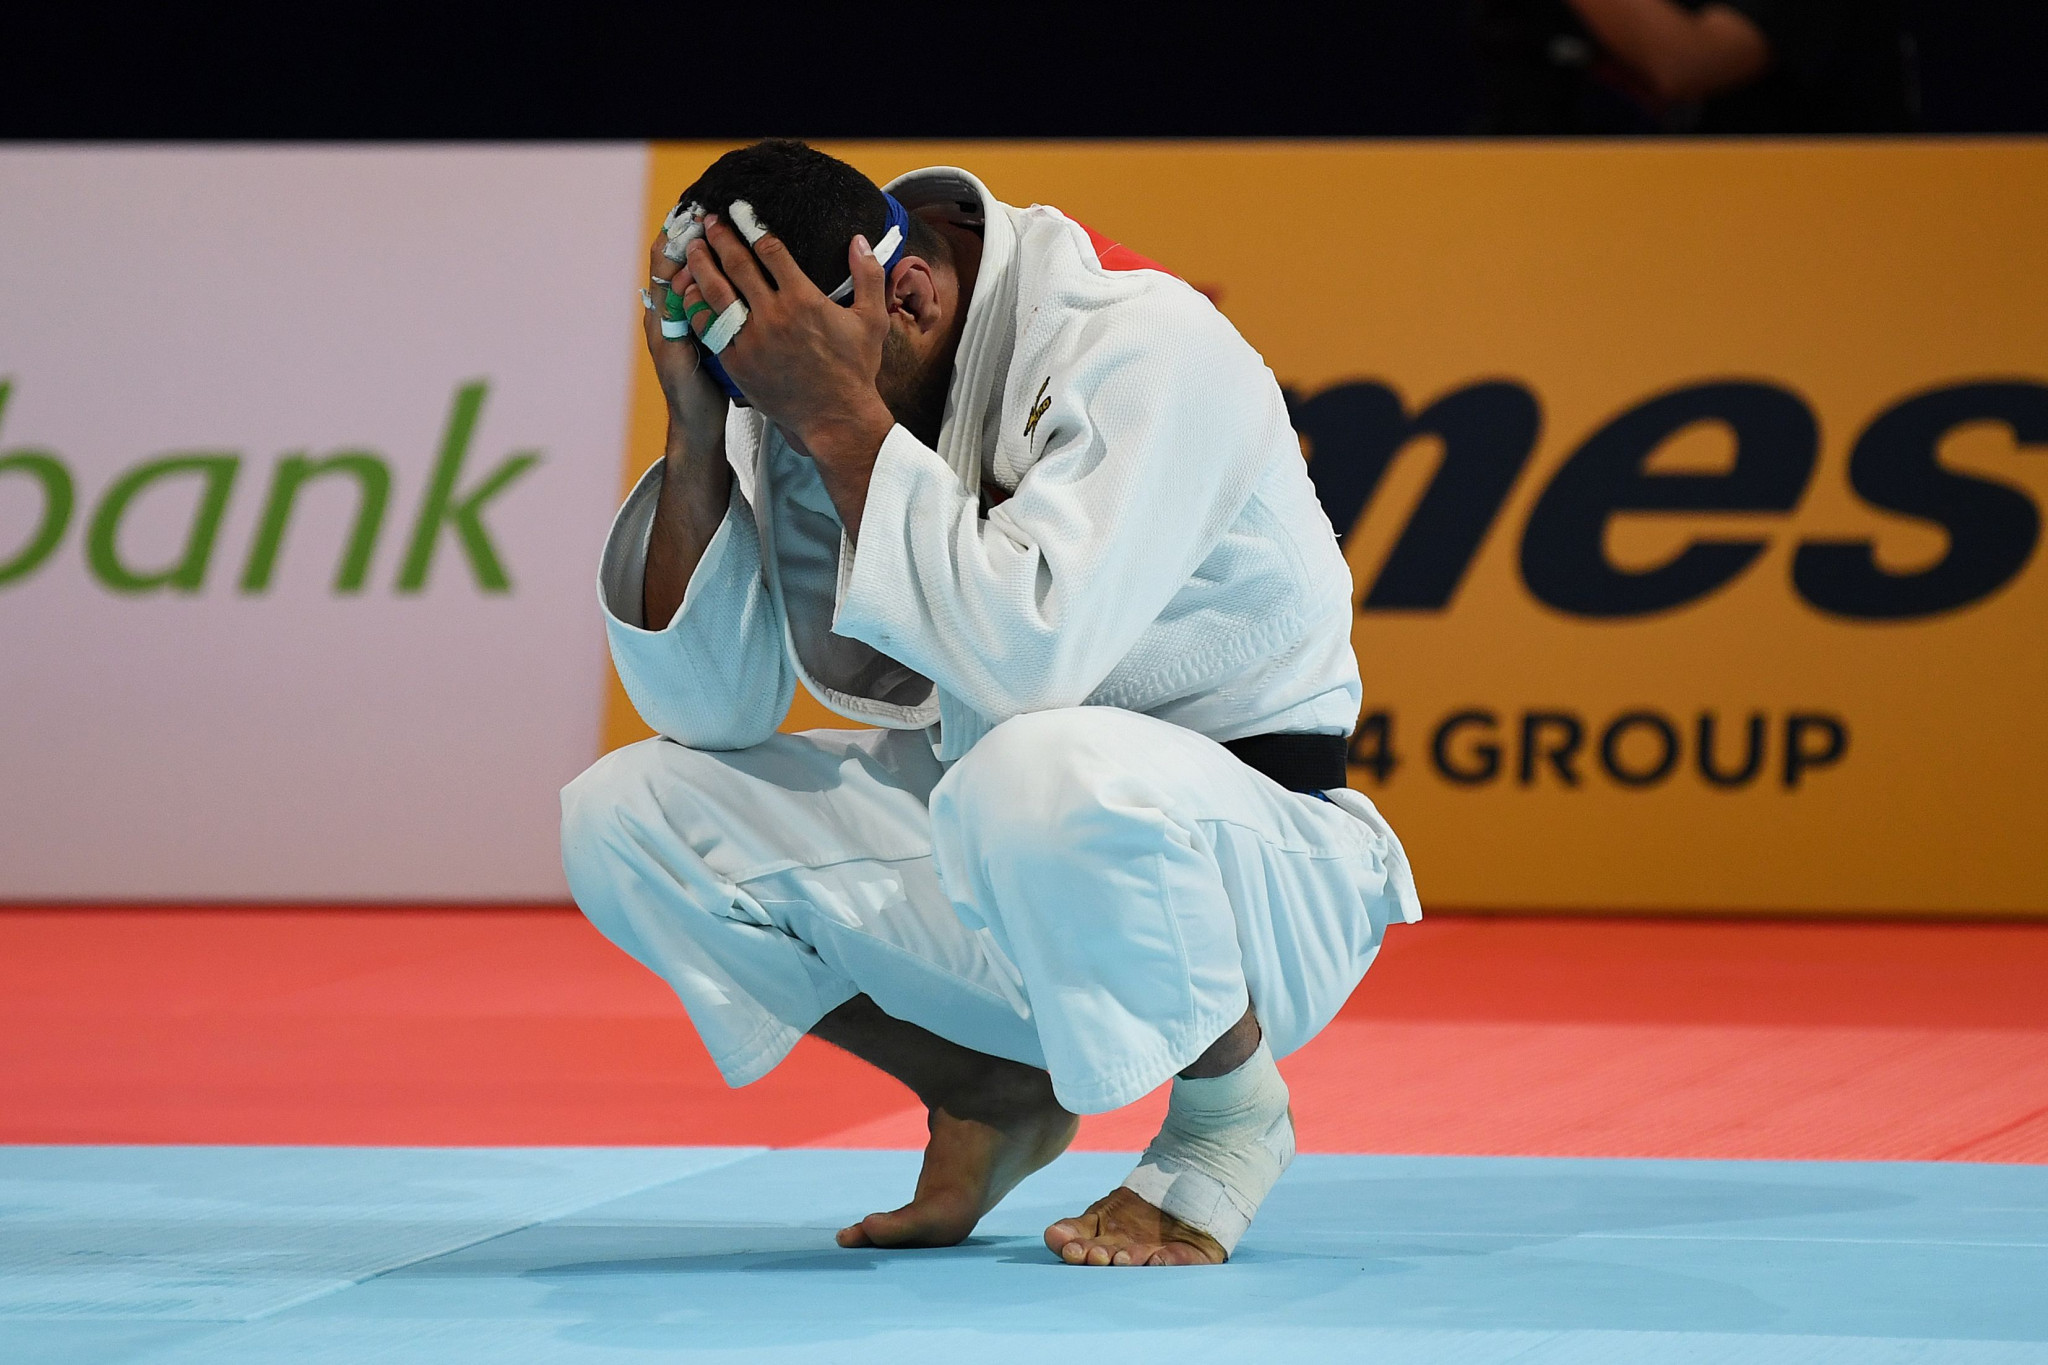 Mollaei's Mongolian debut ends in disappointment at IJF World Judo Masters